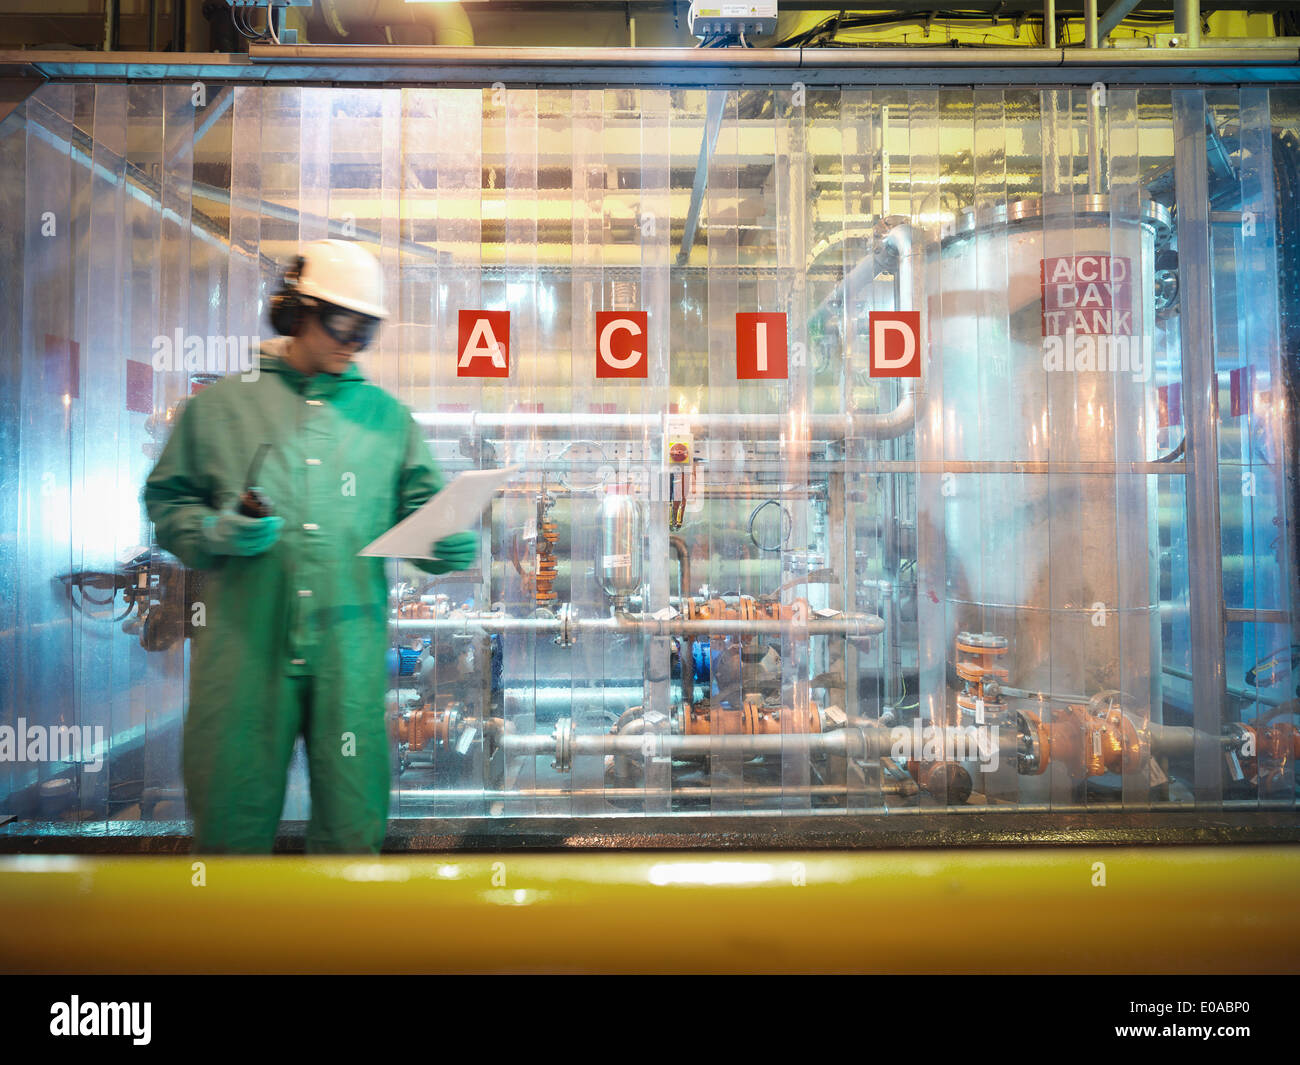 Engineer reading notes in acid store in power station - Stock Image